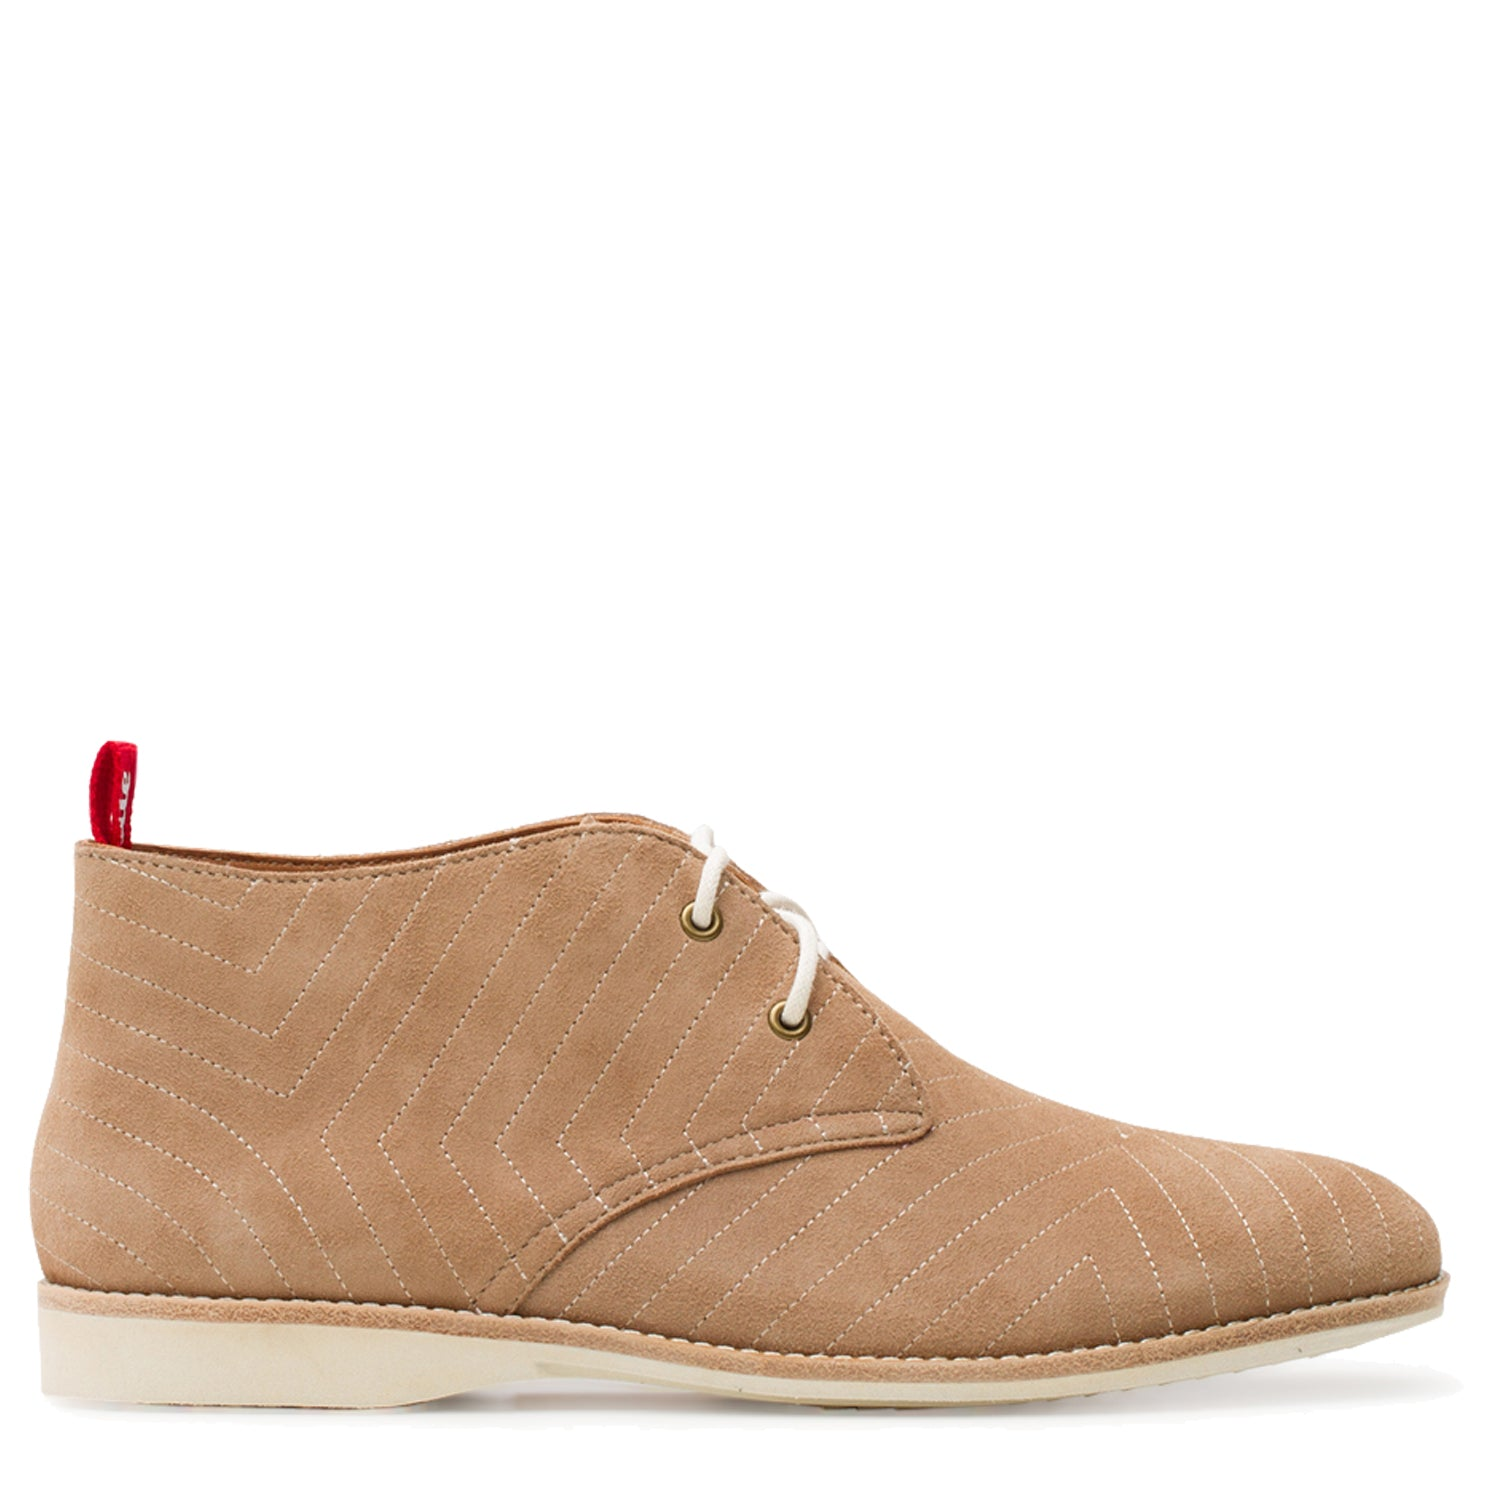 CHUKKA EMBROIDERED TAUPE - EMBROIDERED TAUPE